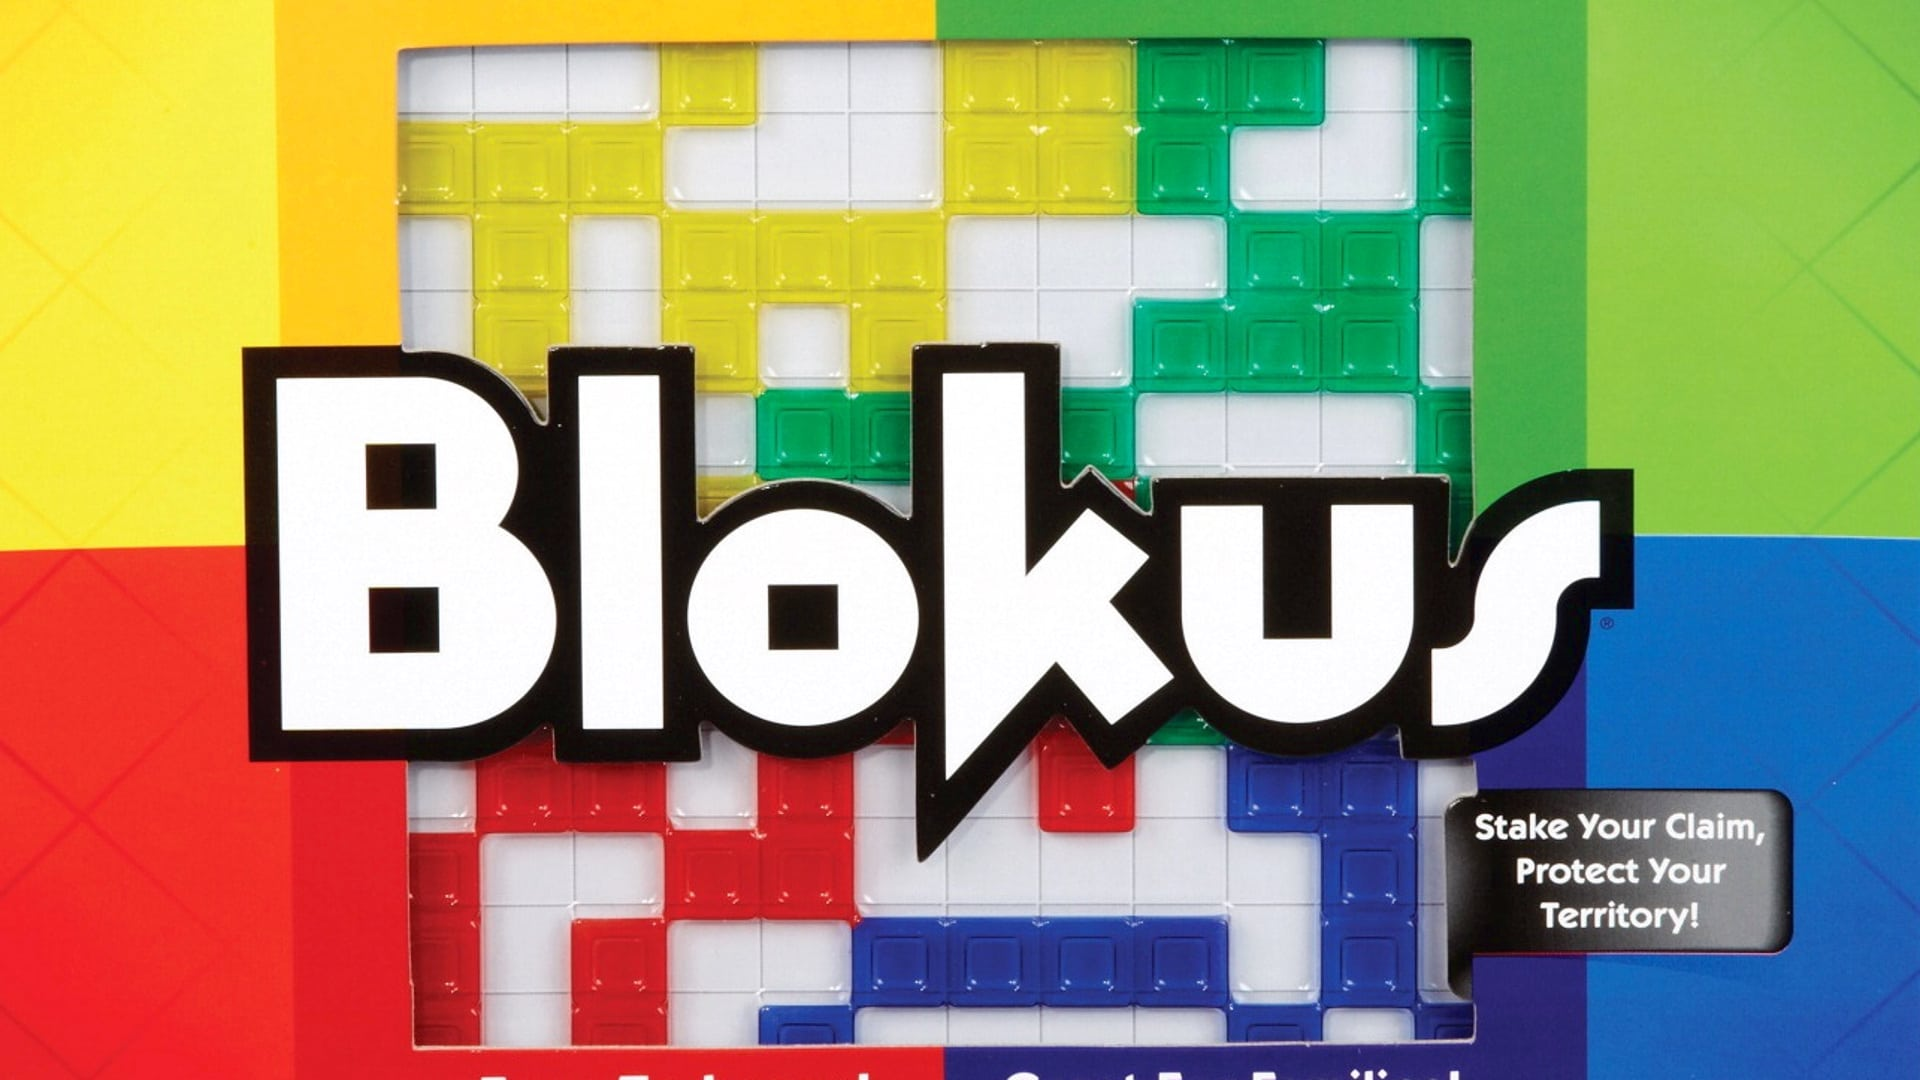 How to play Blokus?